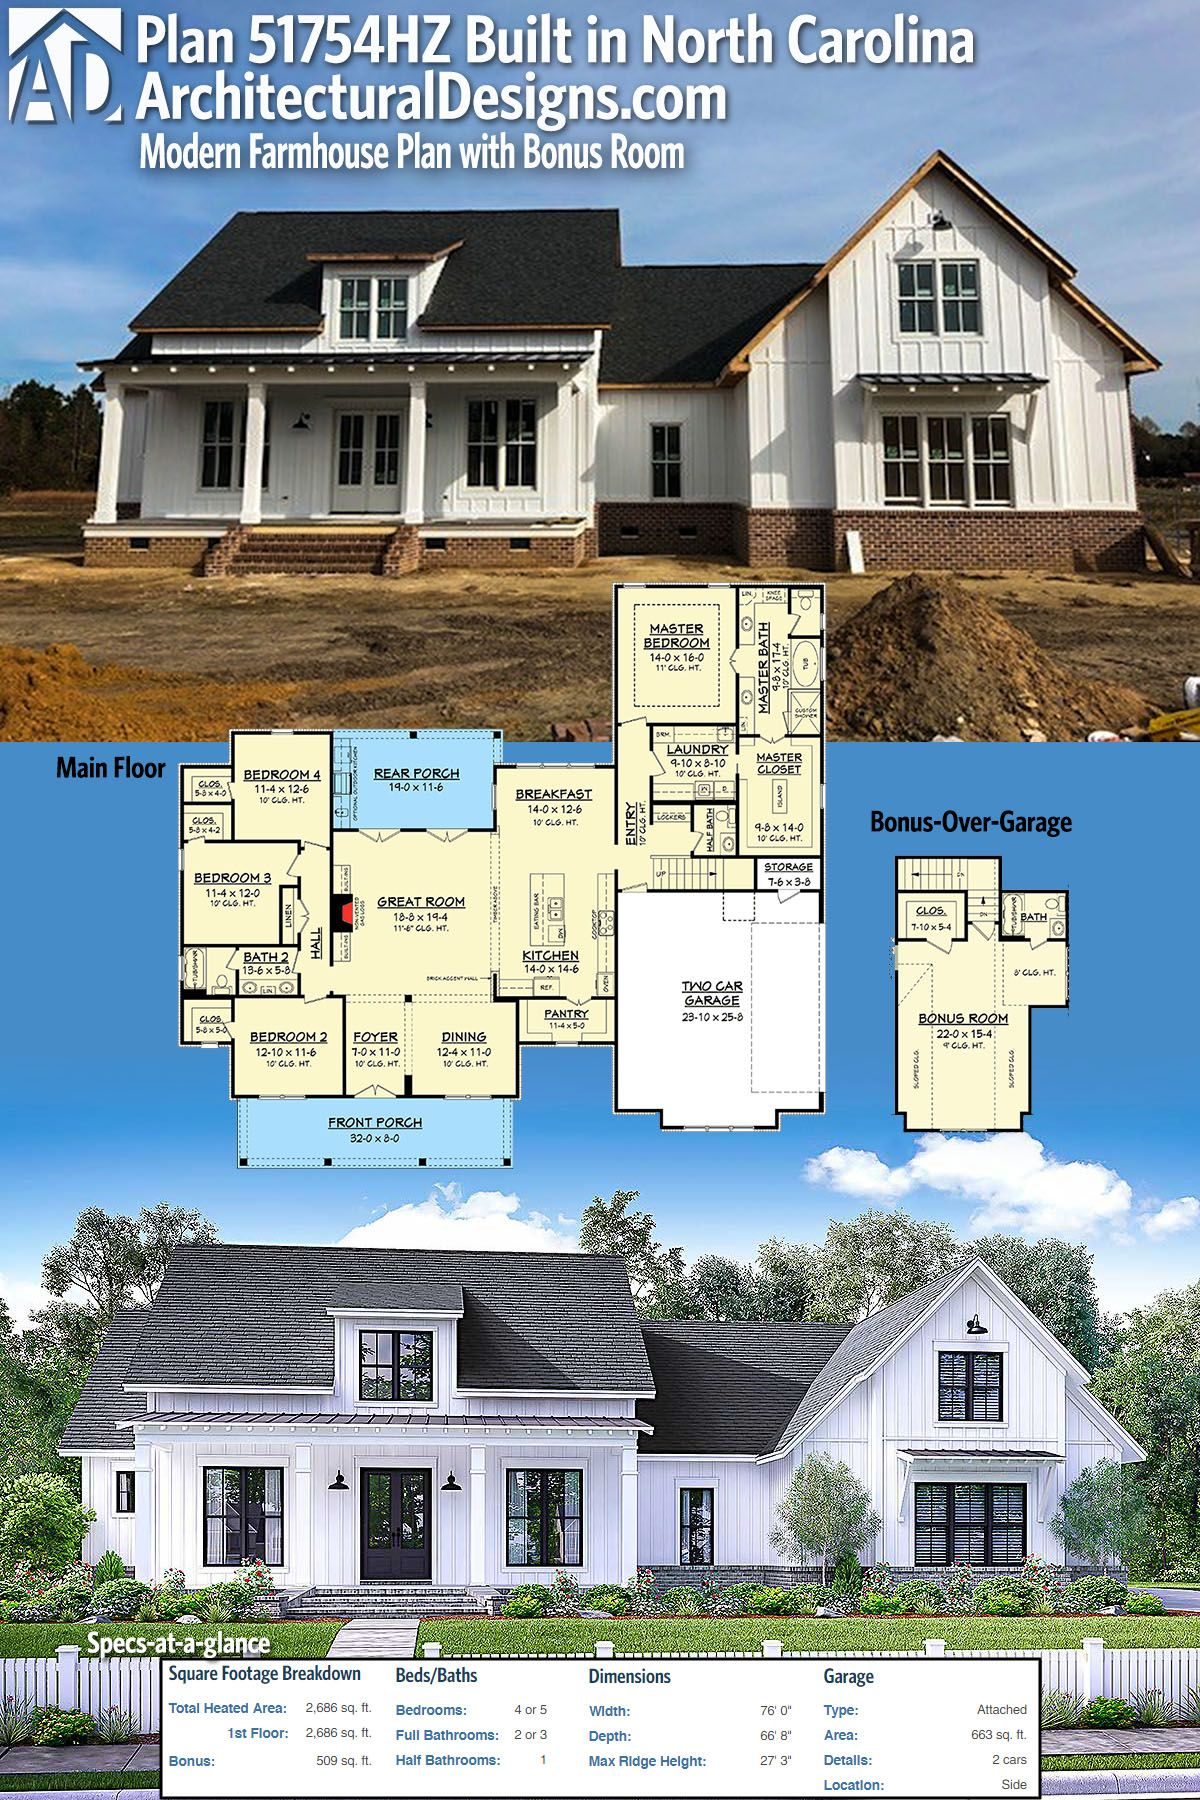 Our Client Built Architectural Designs Modern Farmhouse Plan 51754hz In North Carolina With Brick Accen Modern Farmhouse Plans Farmhouse Plans Modern Farmhouse